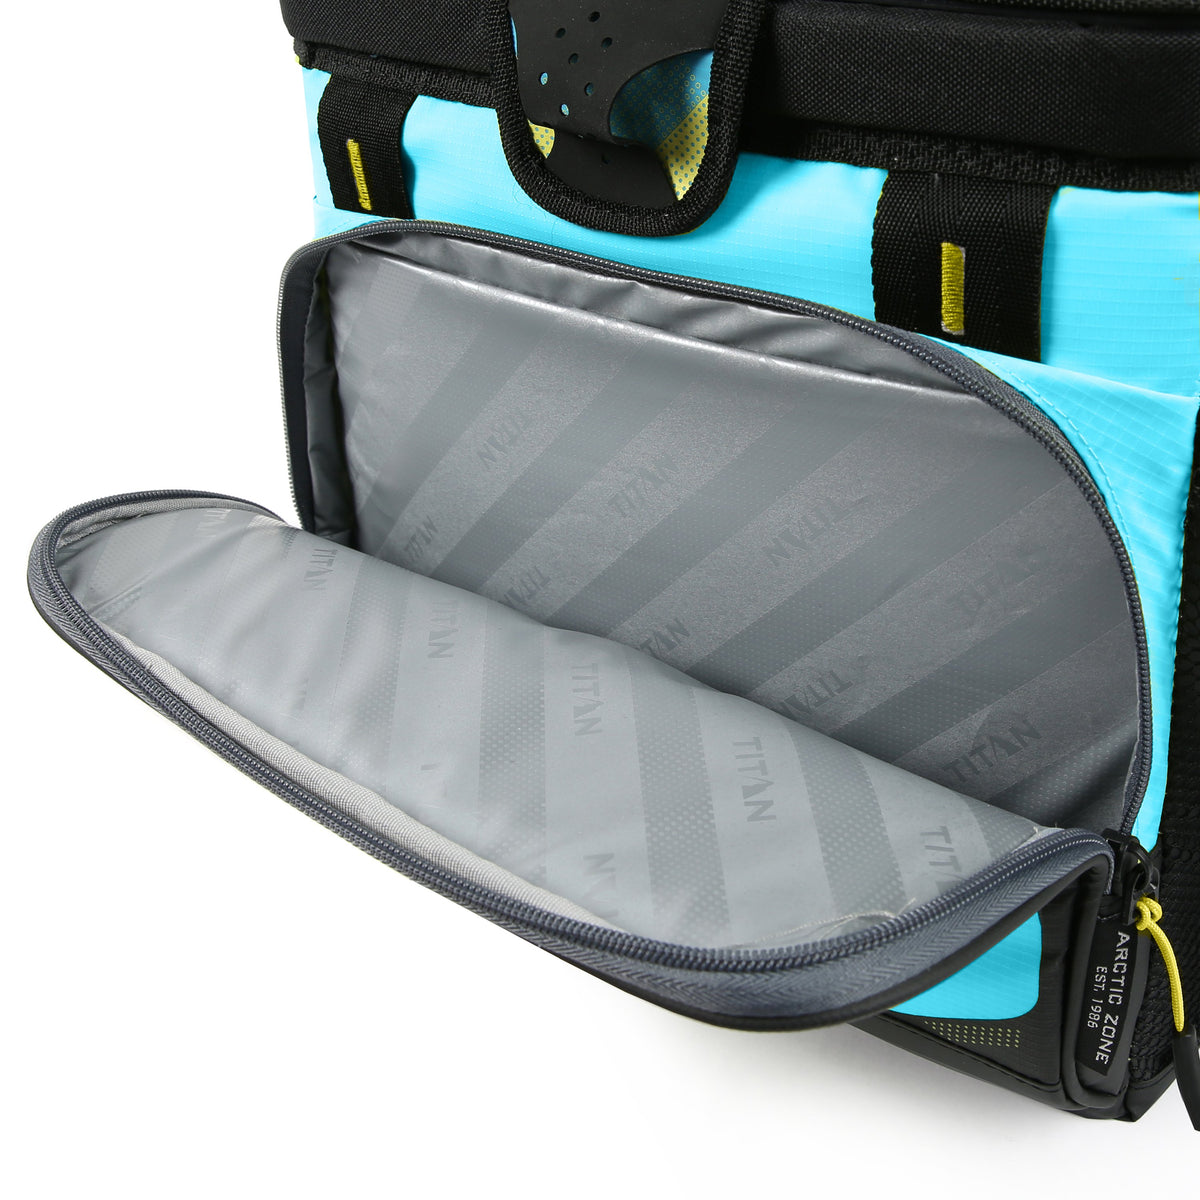 Titan Deep Freeze® 16 Can Zipperless™ HardBody® Cooler - Blue Lagoon - Insulated front pocket